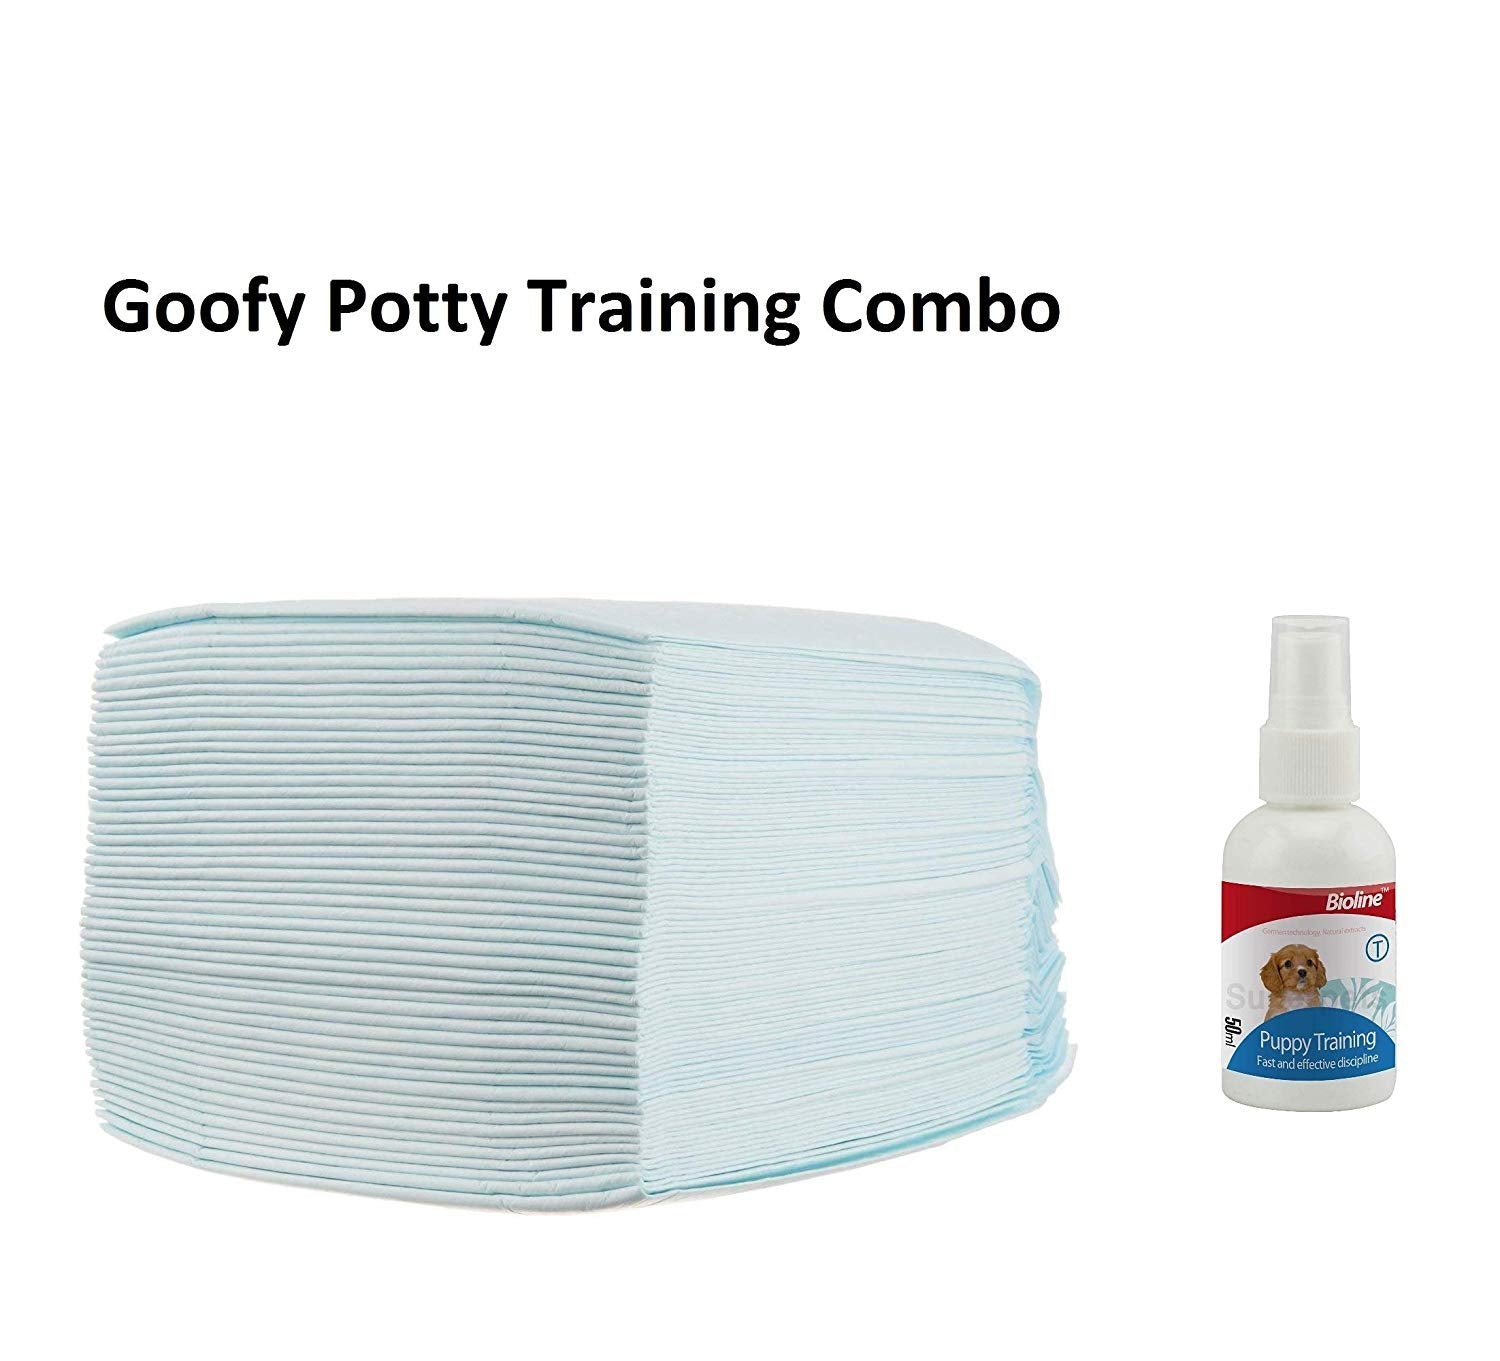 Goofy Tails Puppy Training Potty Pad with Bioline Training Spray for Dog